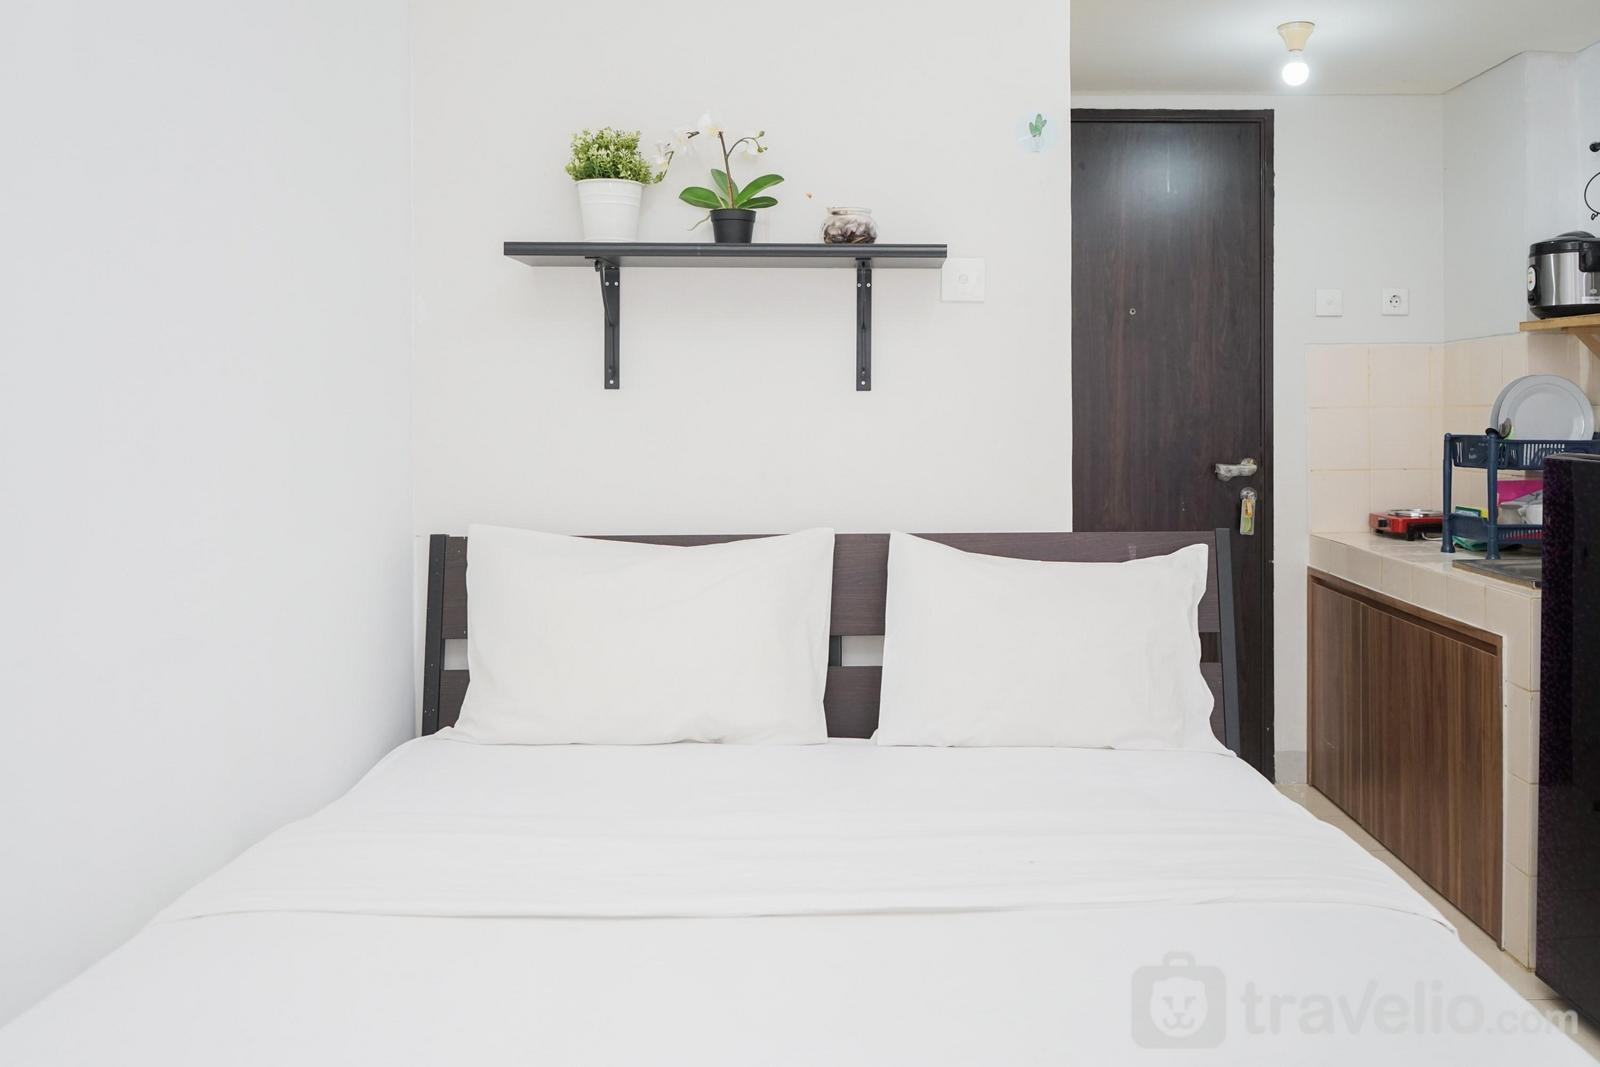 Apartemen Serpong Greenview - Nice and Spacious Studio at Serpong Greenview Apartment By Travelio